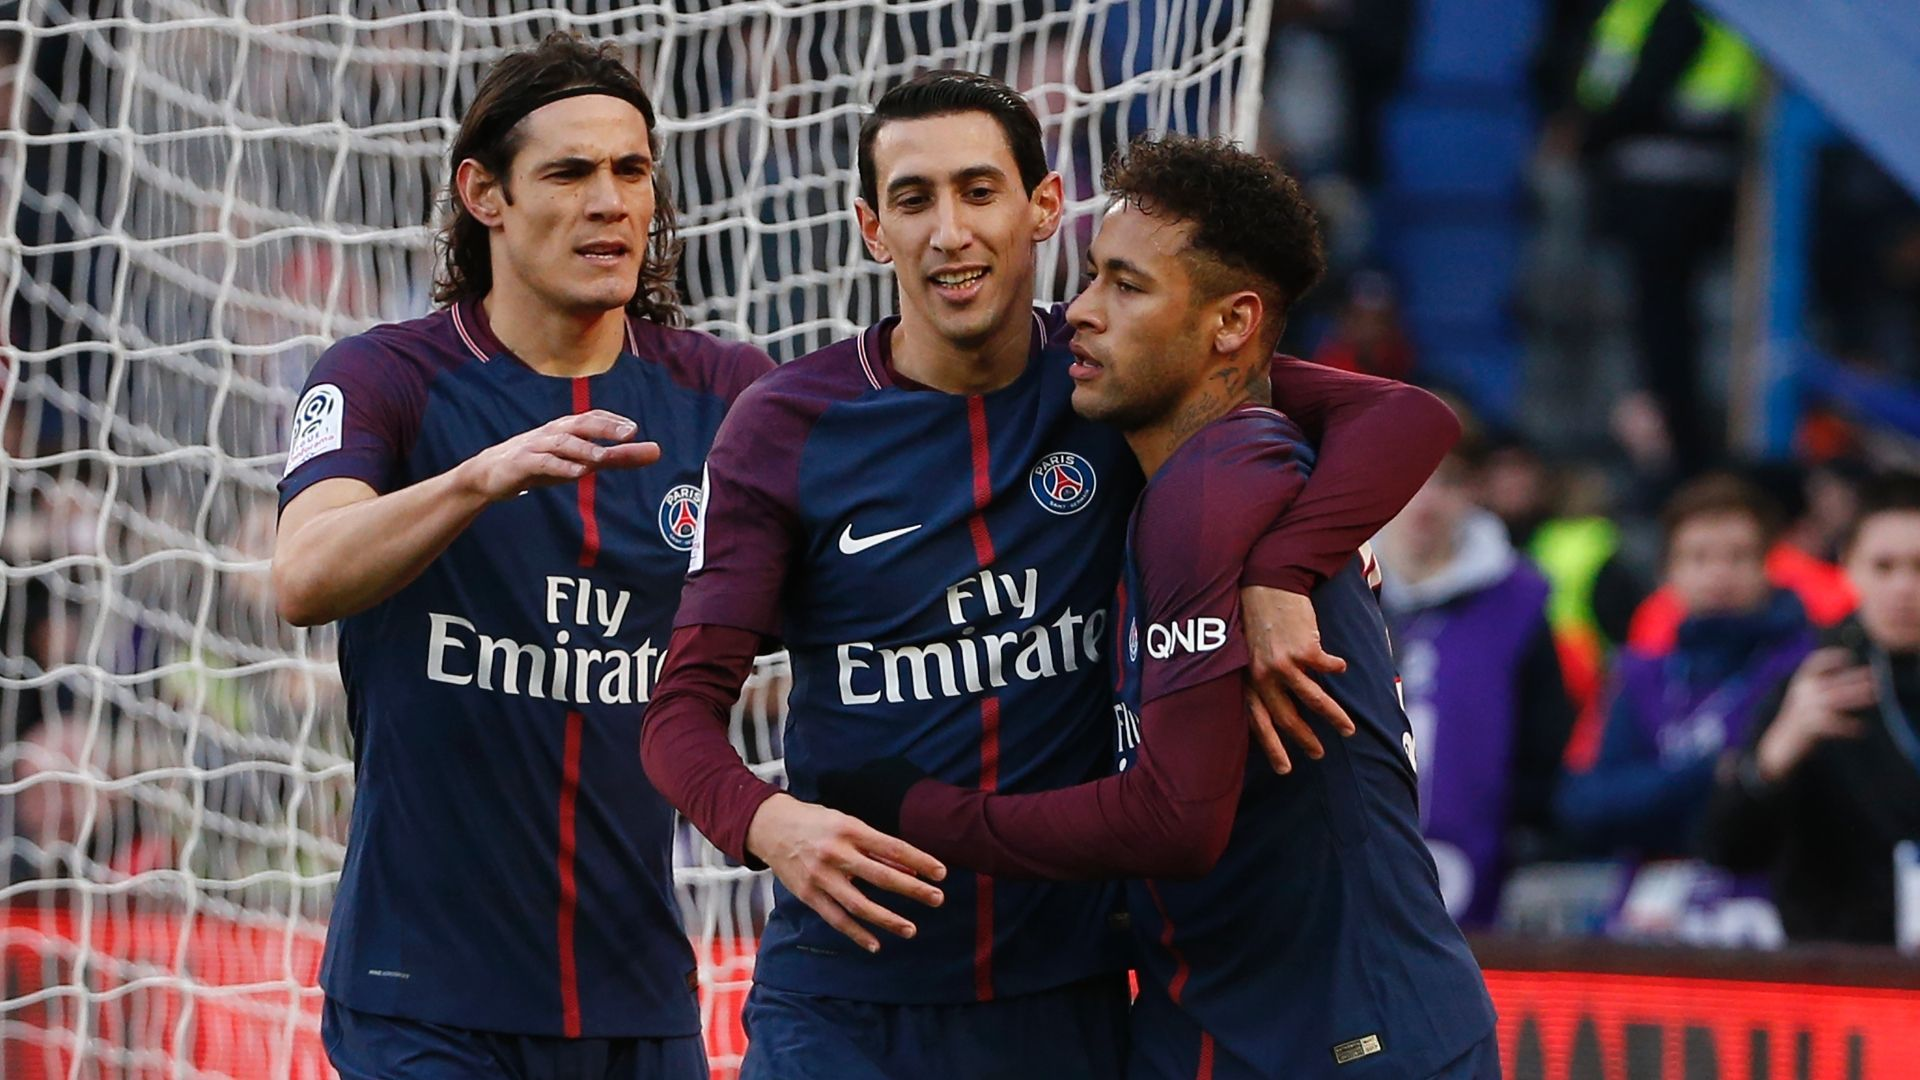 Mbappe hit backs at Assou-Ekotto criticism